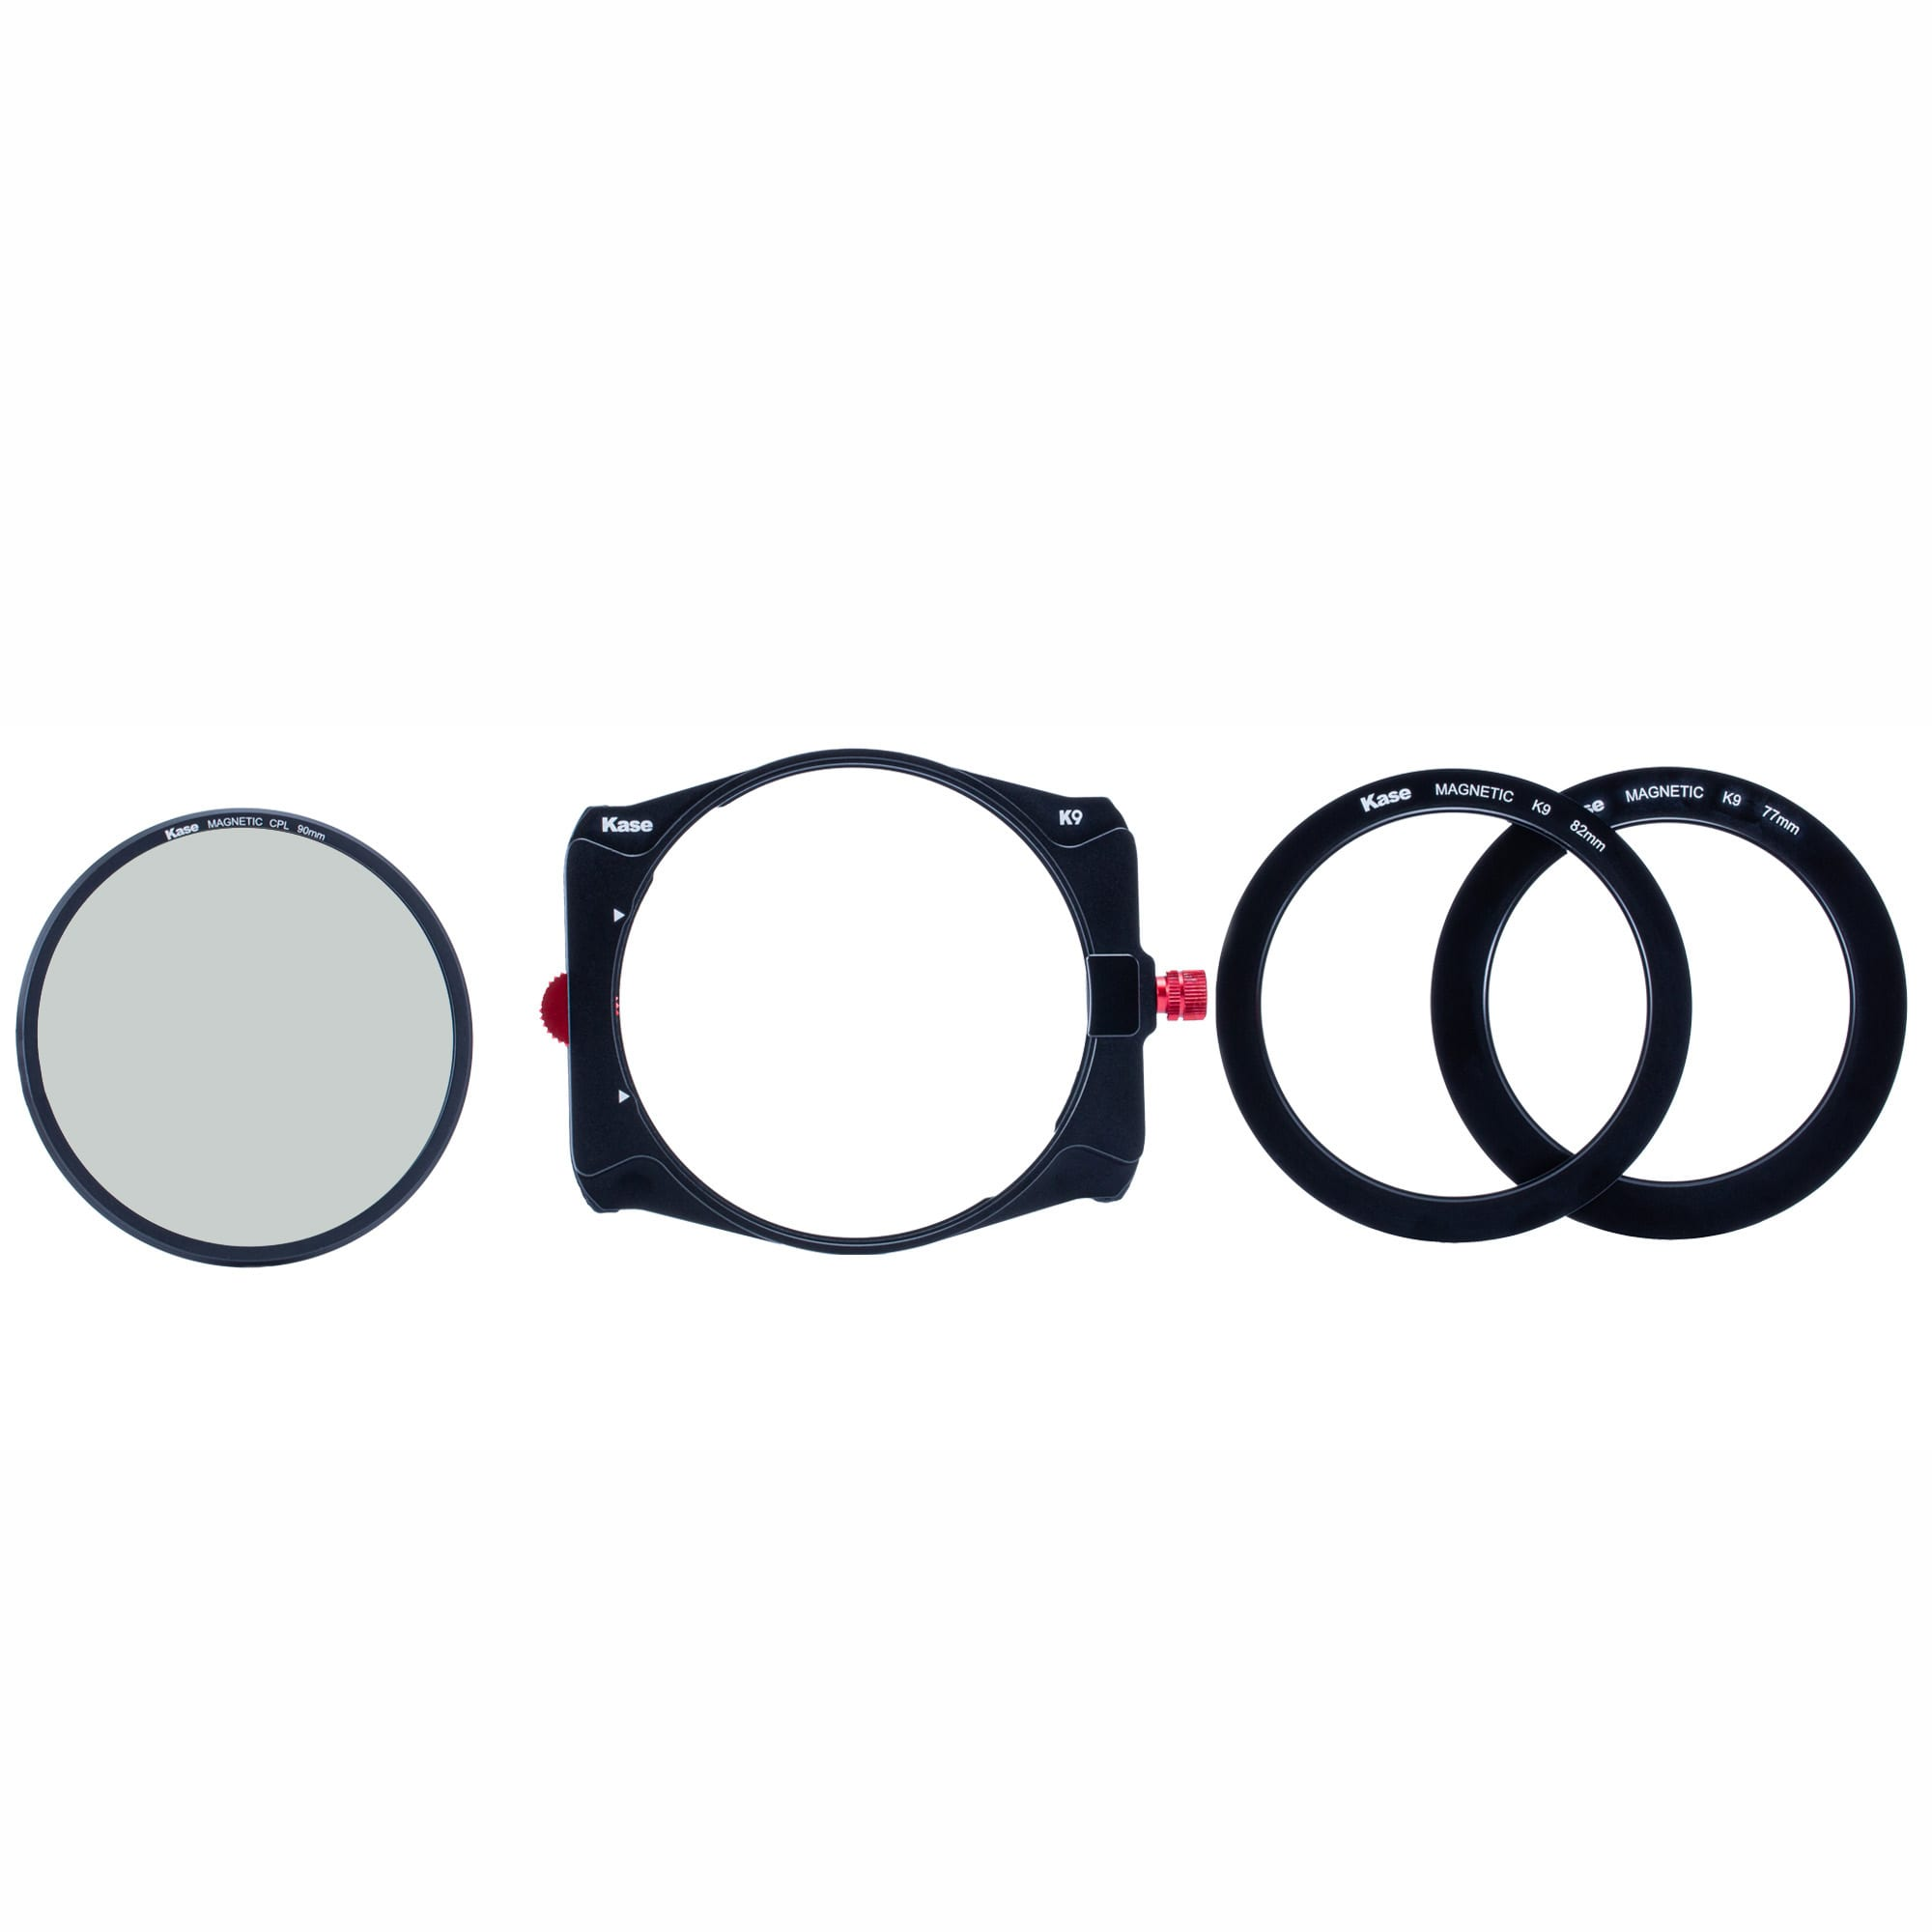 Kase K9 100mm Filter Holder Set